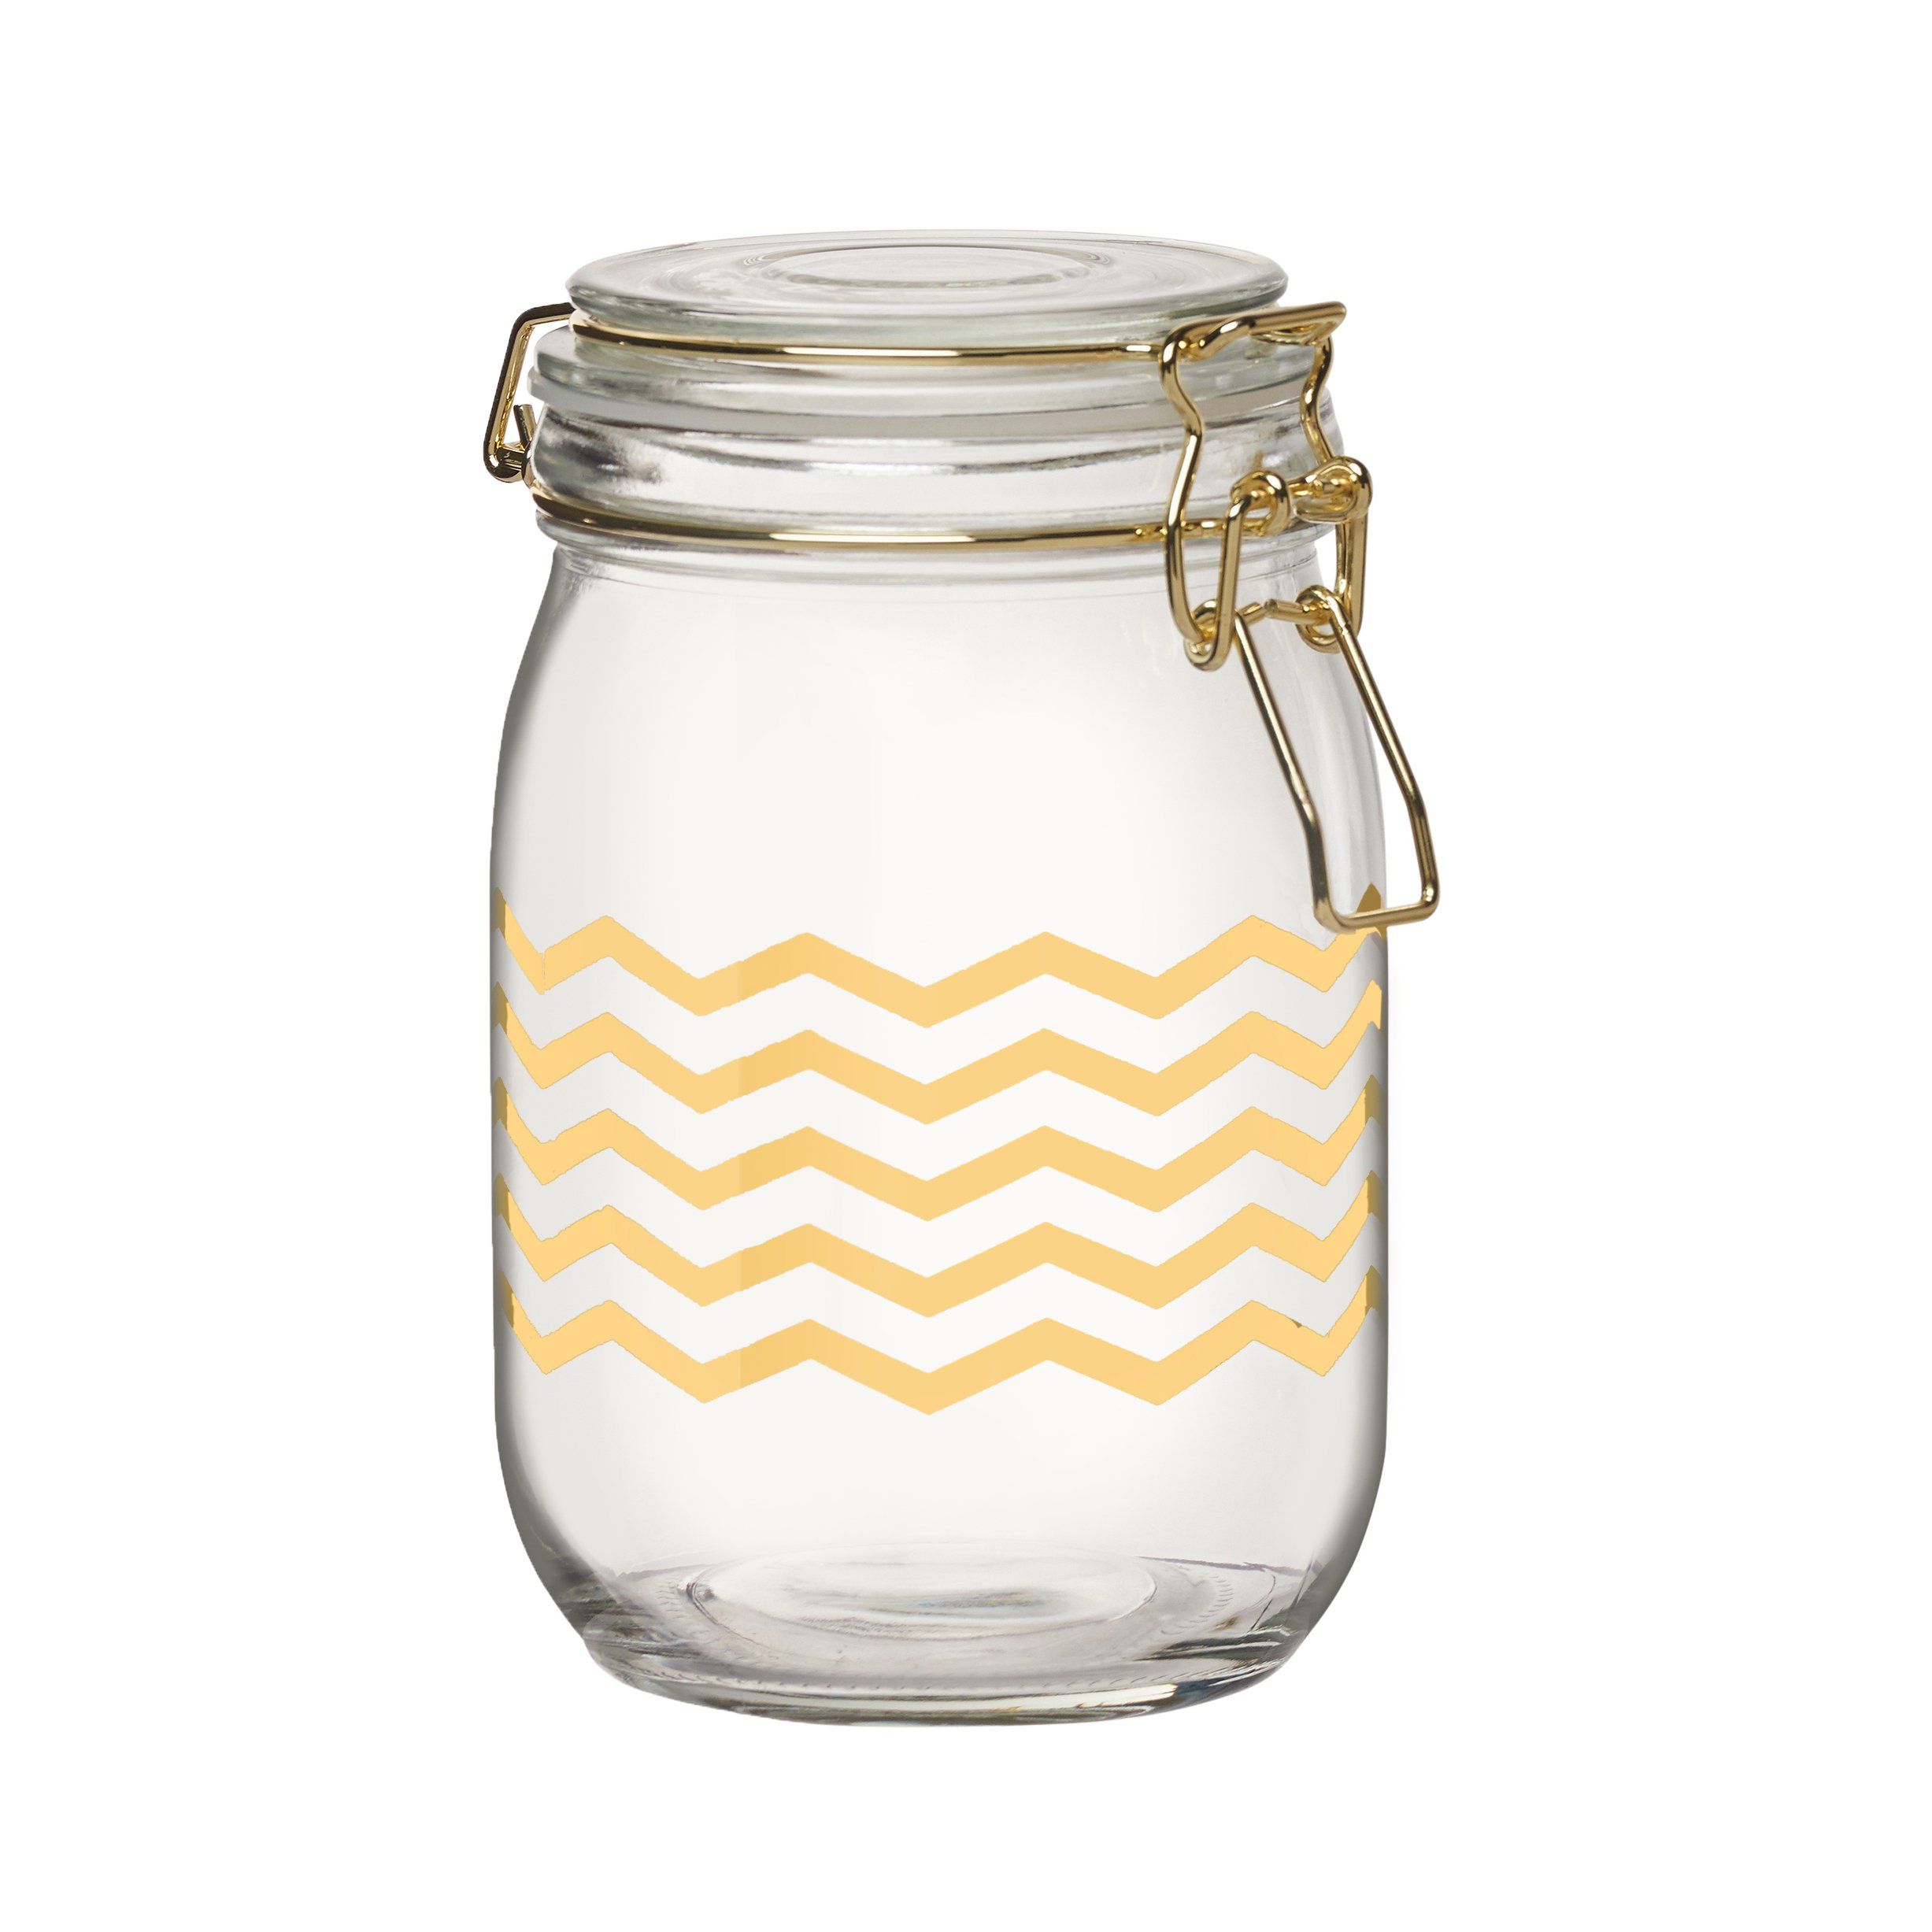 Amici Home, A7CA916R, Luxe Collection Chevron Glass Hermetic Preserving Storage Canister, Food Safe, Gold Metal Clips, Large, 36 Ounces